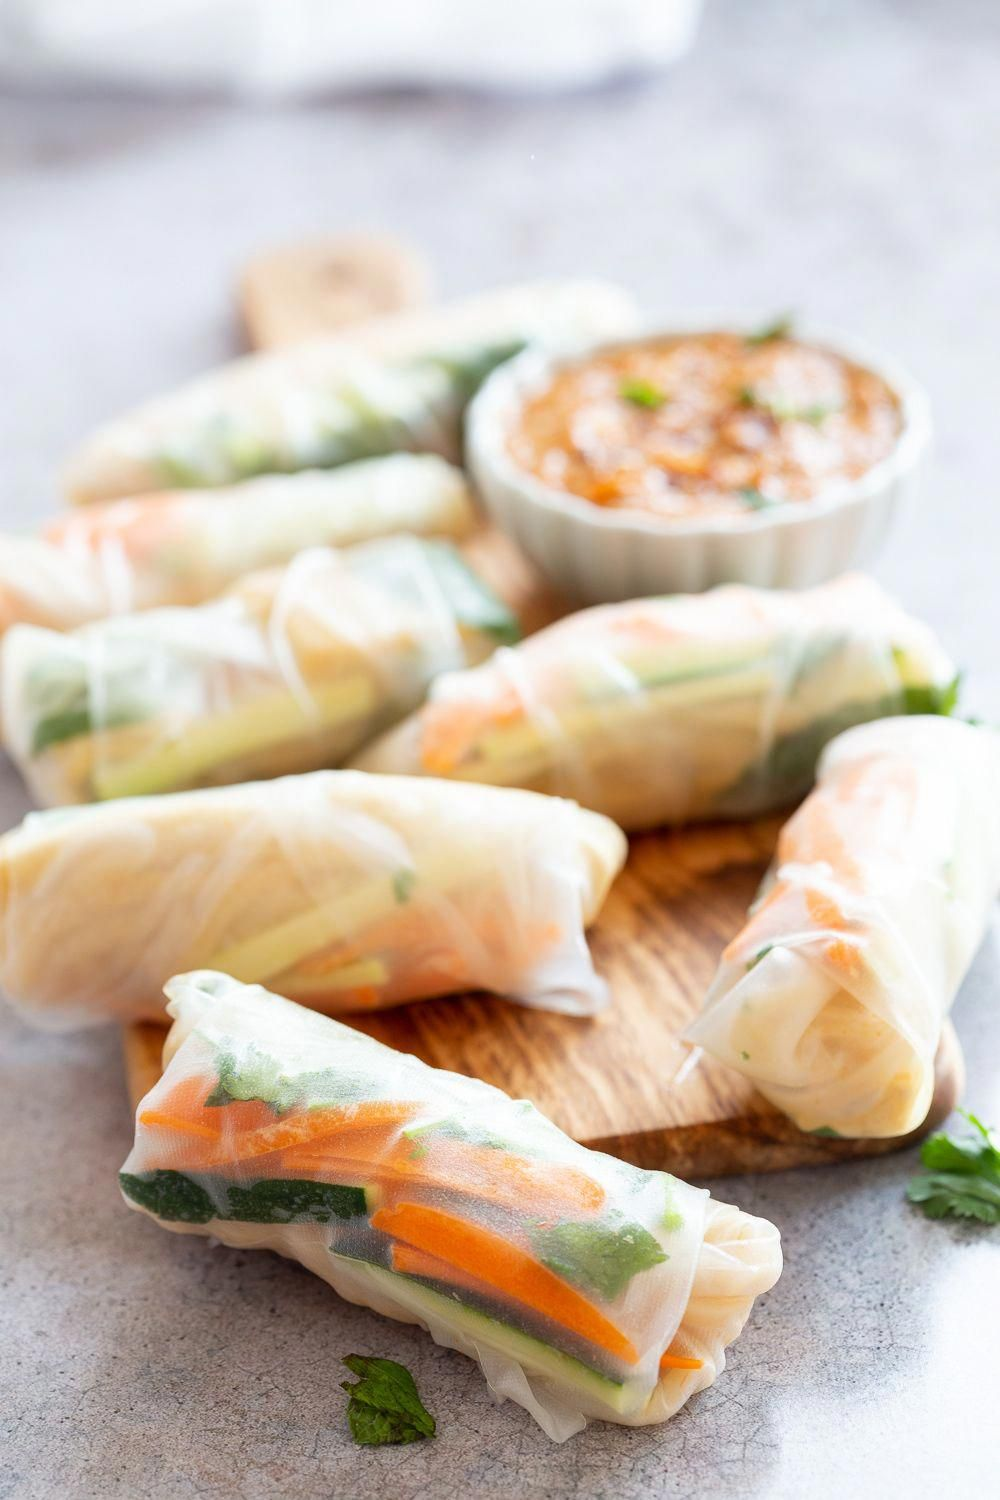 Easy Vegan Fresh Spring Rolls with Peanut Sauce. Rice paper Fresh Rolls with Marinated Tofu and Quick Peanut Dipping Sauce. Glutenfree Can be Nutfree with Sunbutter or Sweet Chili sauce.